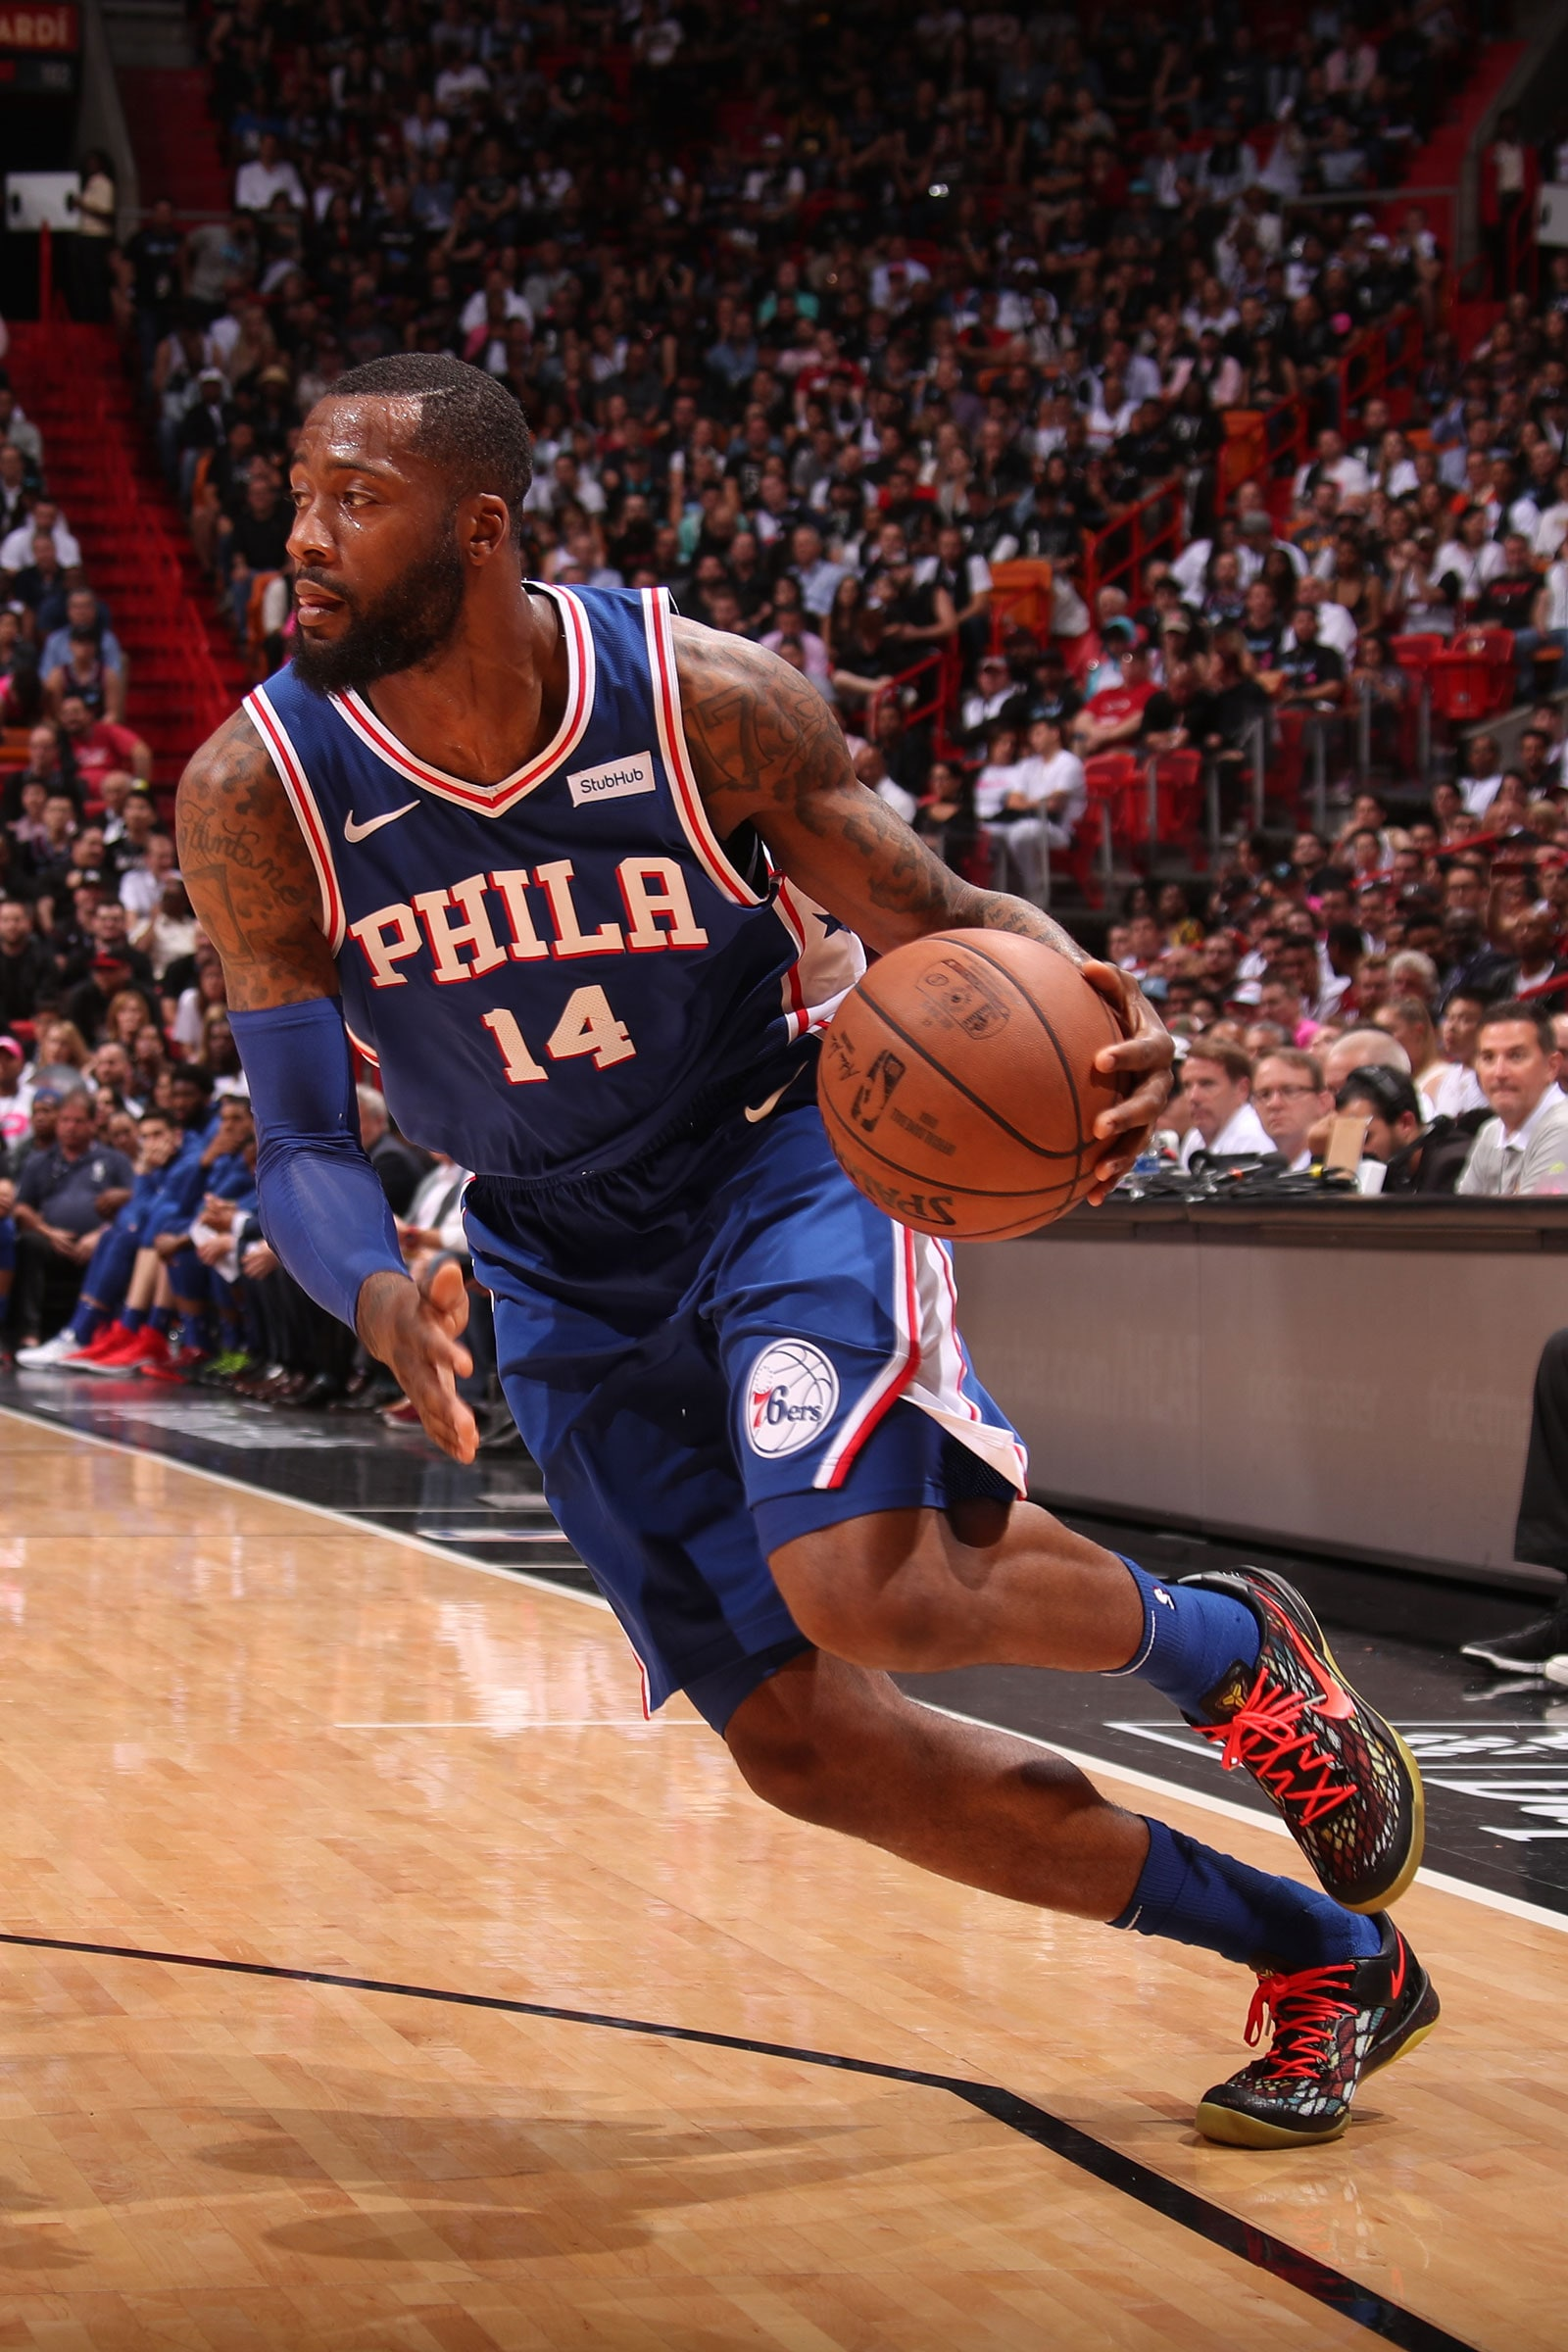 Jonathon Simmons #14 of the Philadelphia 76ers handles the ball during the game against the Miami Heat on April 9, 2019 at American Airlines Arena in Miami, Florida.